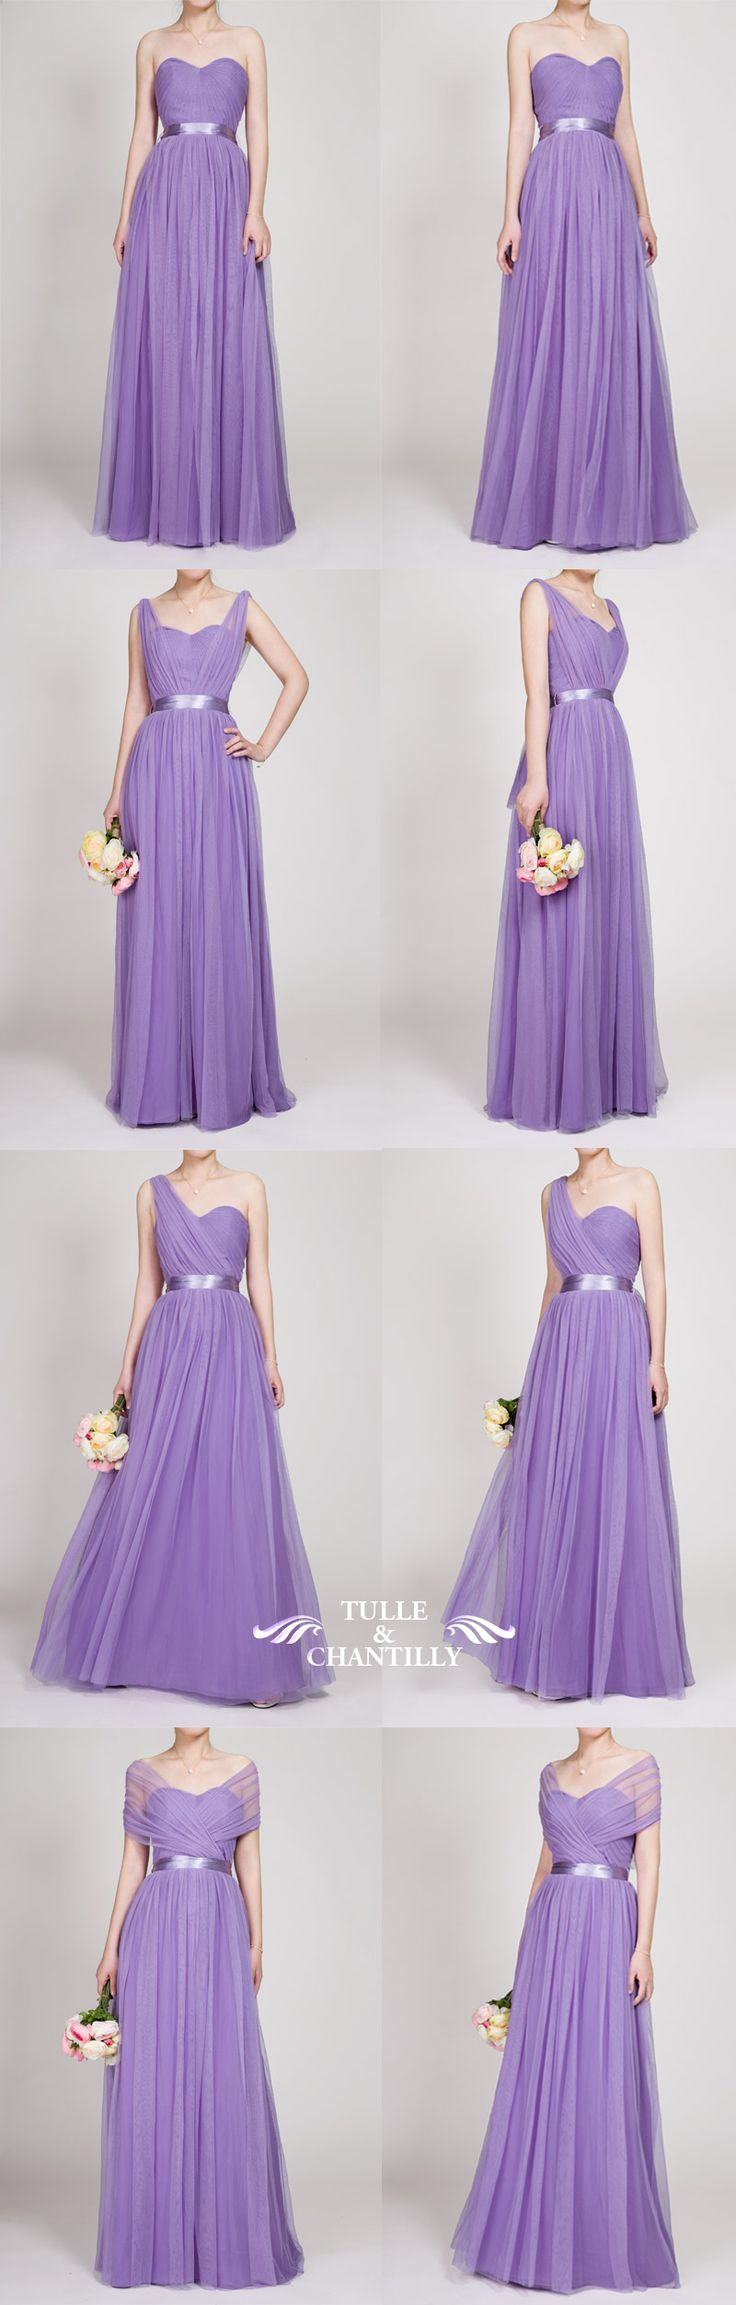 long purple convertible bridesmaid dresses and gowns